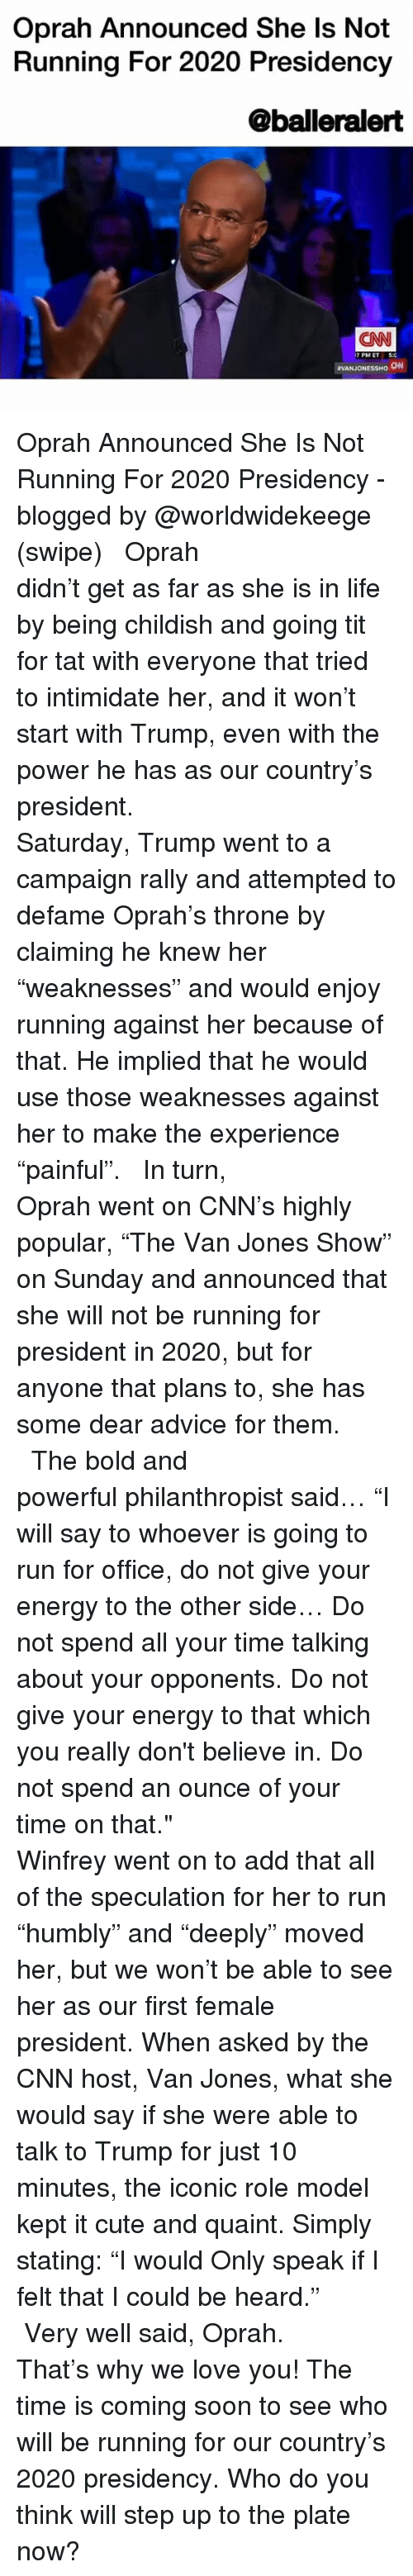 "Advice, cnn.com, and Cute: Oprah Announced She Is Not  Running For 2020 Presidency  @balleralert  CNN  7 PM ET 50  VANJONESSHO ON Oprah Announced She Is Not Running For 2020 Presidency - blogged by @worldwidekeege (swipe) ⠀⠀⠀⠀⠀⠀⠀⠀⠀ ⠀⠀⠀⠀⠀⠀⠀⠀⠀ Oprah didn't get as far as she is in life by being childish and going tit for tat with everyone that tried to intimidate her, and it won't start with Trump, even with the power he has as our country's president. ⠀⠀⠀⠀⠀⠀⠀⠀⠀ ⠀⠀⠀⠀⠀⠀⠀⠀⠀ Saturday, Trump went to a campaign rally and attempted to defame Oprah's throne by claiming he knew her ""weaknesses"" and would enjoy running against her because of that. He implied that he would use those weaknesses against her to make the experience ""painful"". ⠀⠀⠀⠀⠀⠀⠀⠀⠀ ⠀⠀⠀⠀⠀⠀⠀⠀⠀ In turn, Oprah went on CNN's highly popular, ""The Van Jones Show"" on Sunday and announced that she will not be running for president in 2020, but for anyone that plans to, she has some dear advice for them. ⠀⠀⠀⠀⠀⠀⠀⠀⠀ ⠀⠀⠀⠀⠀⠀⠀⠀⠀ The bold and powerful philanthropist said… ""I will say to whoever is going to run for office, do not give your energy to the other side… Do not spend all your time talking about your opponents. Do not give your energy to that which you really don't believe in. Do not spend an ounce of your time on that."" ⠀⠀⠀⠀⠀⠀⠀⠀⠀ ⠀⠀⠀⠀⠀⠀⠀⠀⠀ Winfrey went on to add that all of the speculation for her to run ""humbly"" and ""deeply"" moved her, but we won't be able to see her as our first female president. When asked by the CNN host, Van Jones, what she would say if she were able to talk to Trump for just 10 minutes, the iconic role model kept it cute and quaint. Simply stating: ""I would Only speak if I felt that I could be heard."" ⠀⠀⠀⠀⠀⠀⠀⠀⠀ ⠀⠀⠀⠀⠀⠀⠀⠀⠀ Very well said, Oprah. That's why we love you! The time is coming soon to see who will be running for our country's 2020 presidency. Who do you think will step up to the plate now?"